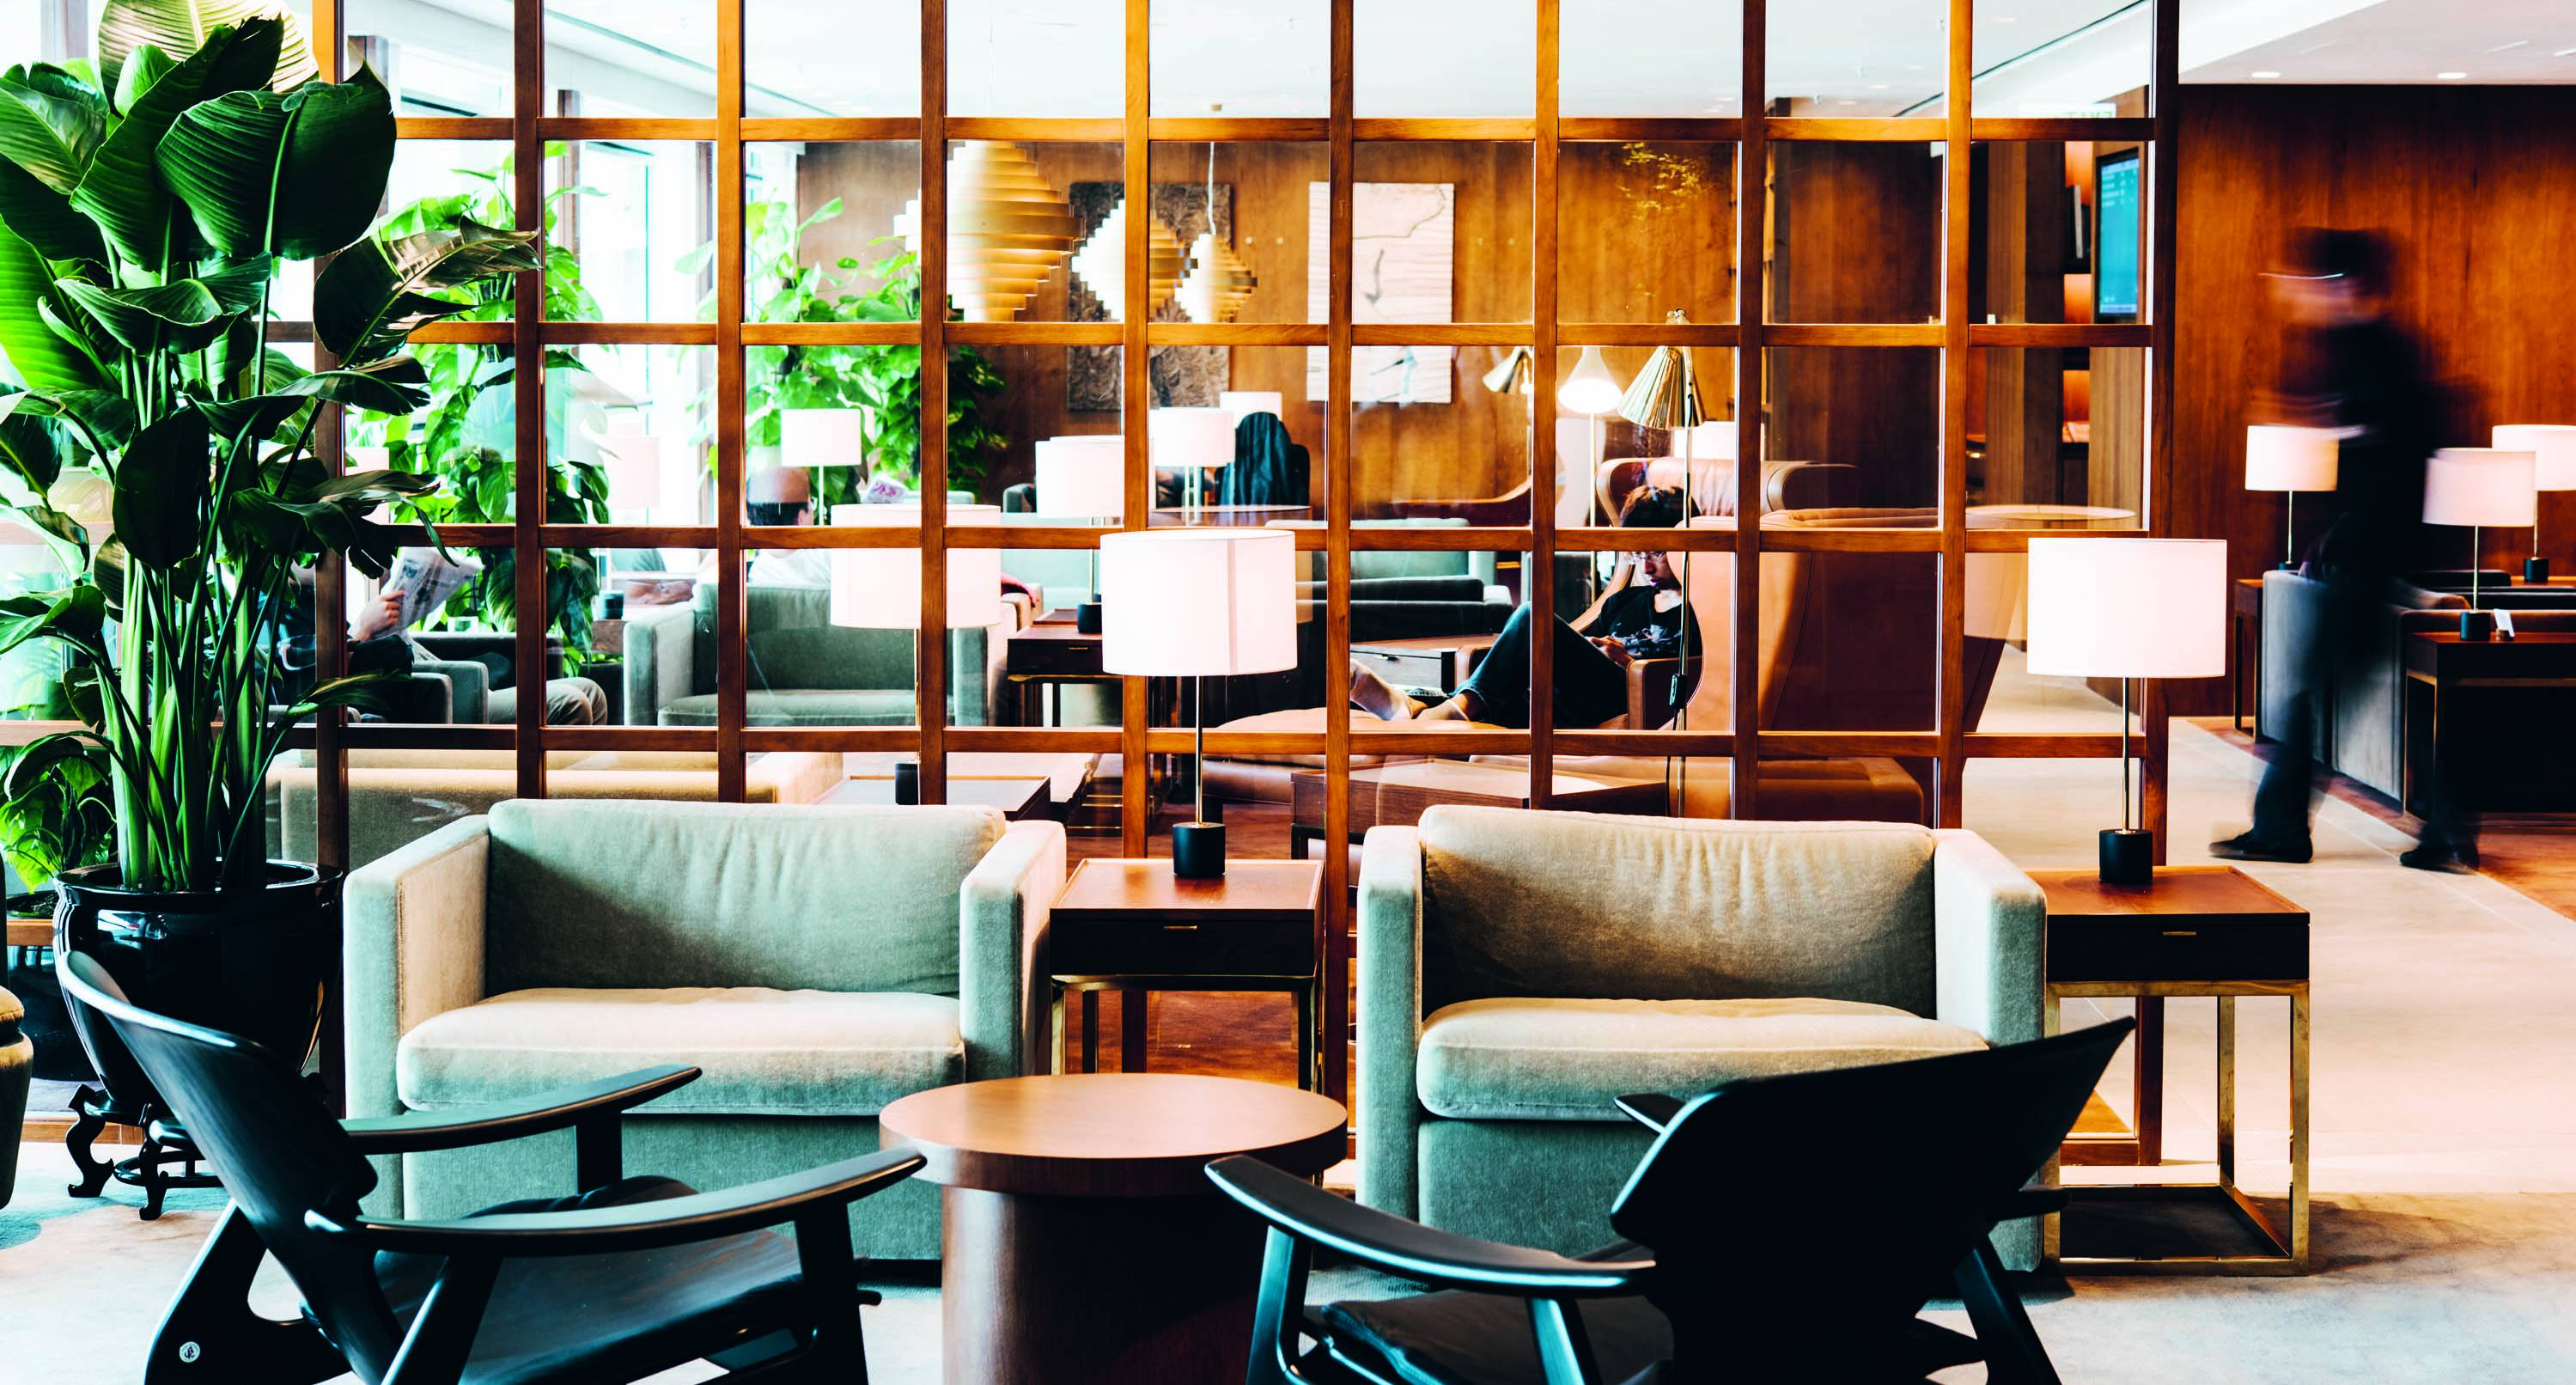 For cathay pacifics business lounge in hong kong crawford used plush natural materials such as cherry wood bronze and leather to create a cool